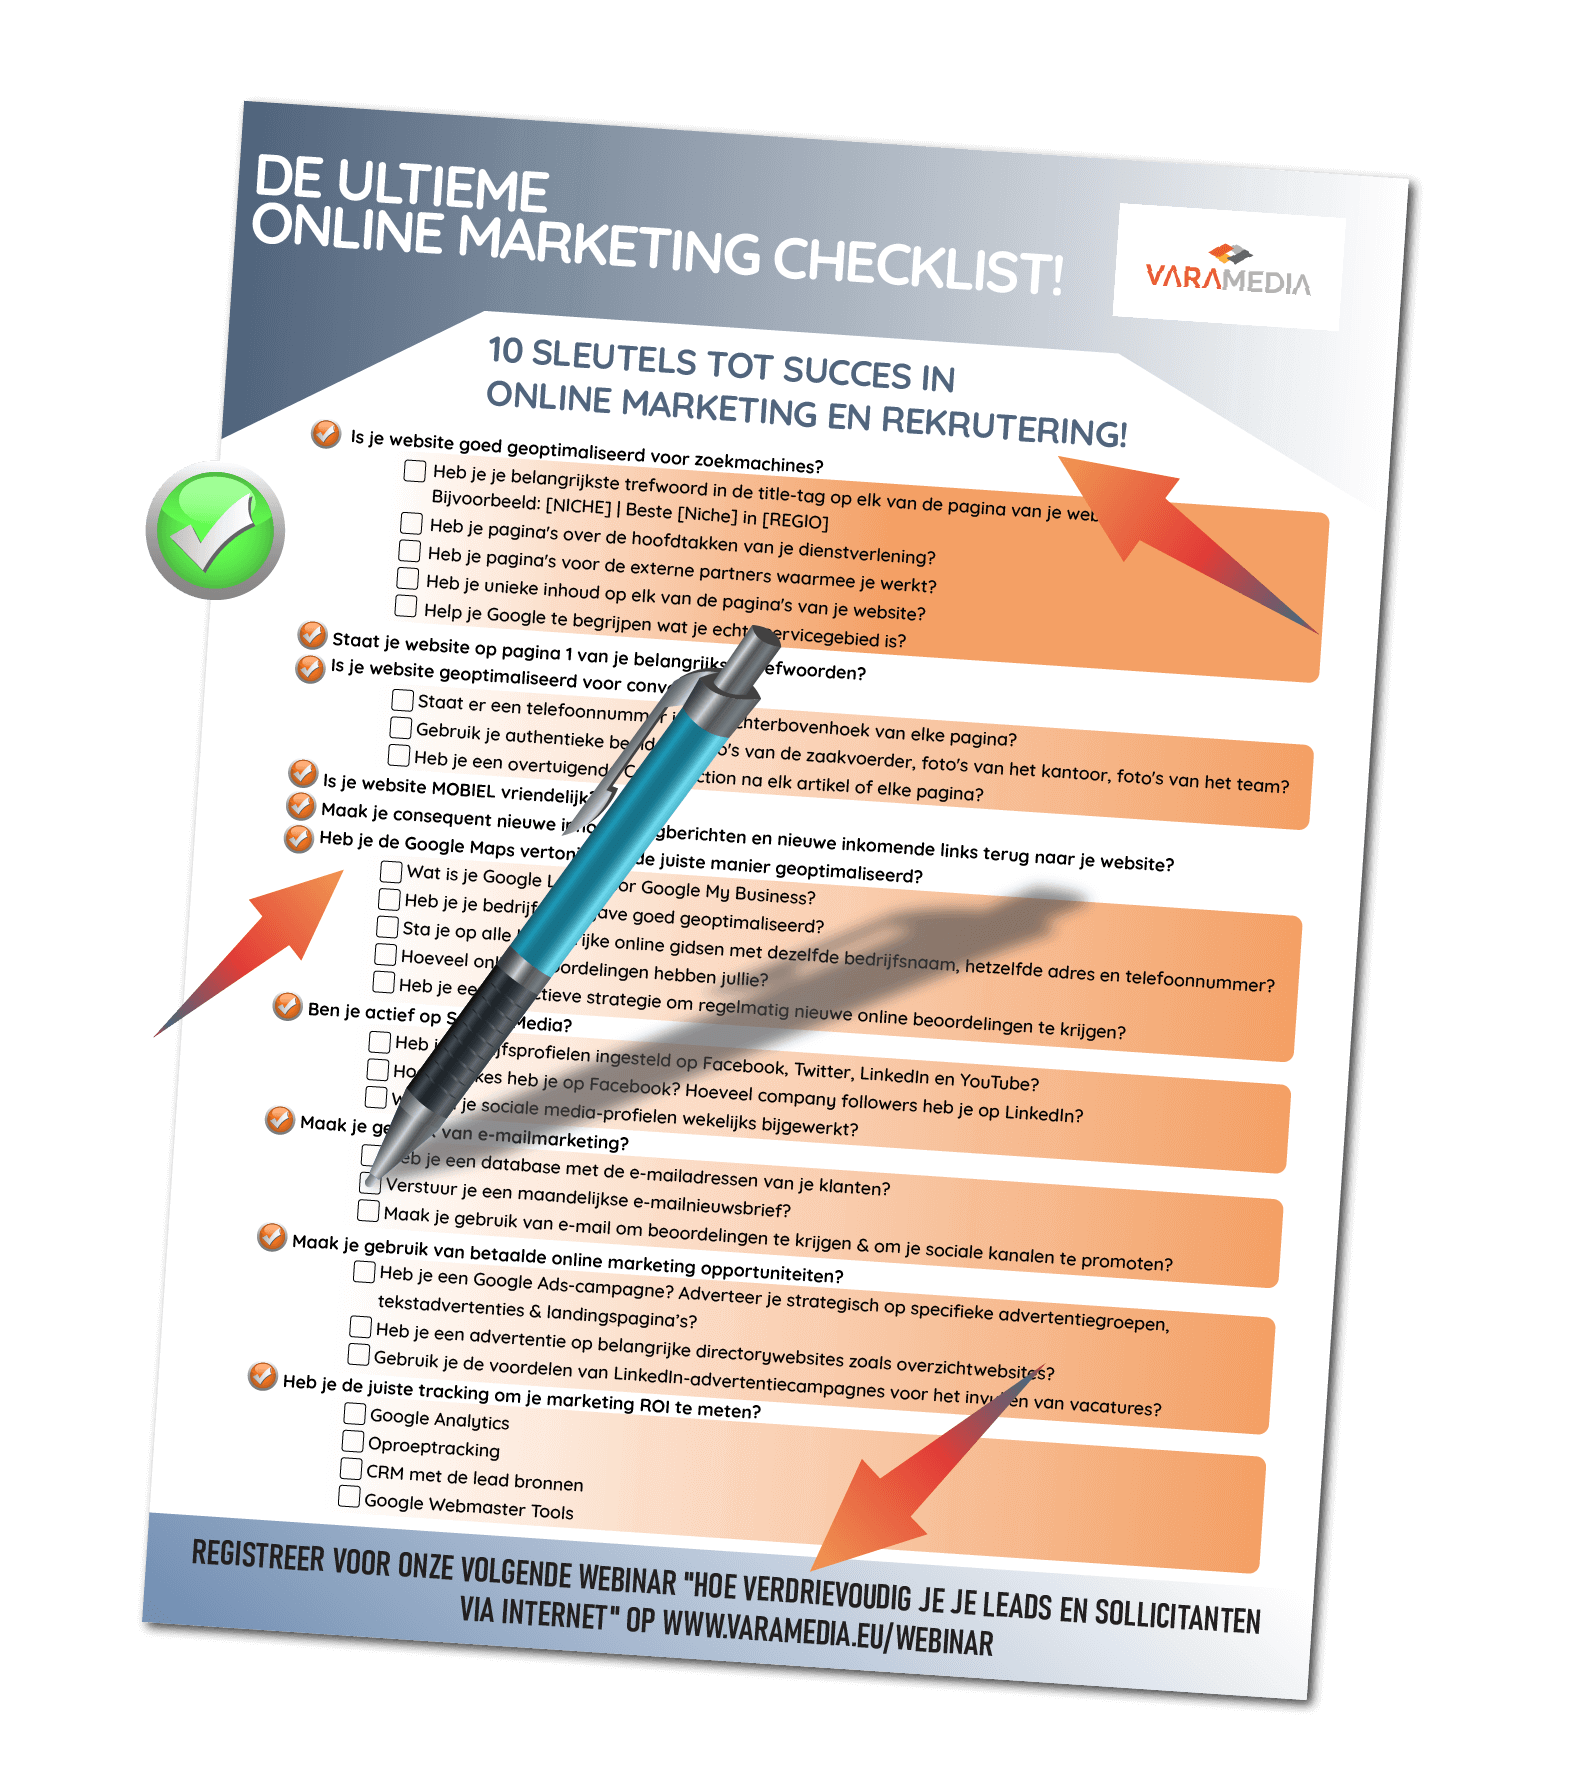 Marketing checklist varamedia (1)